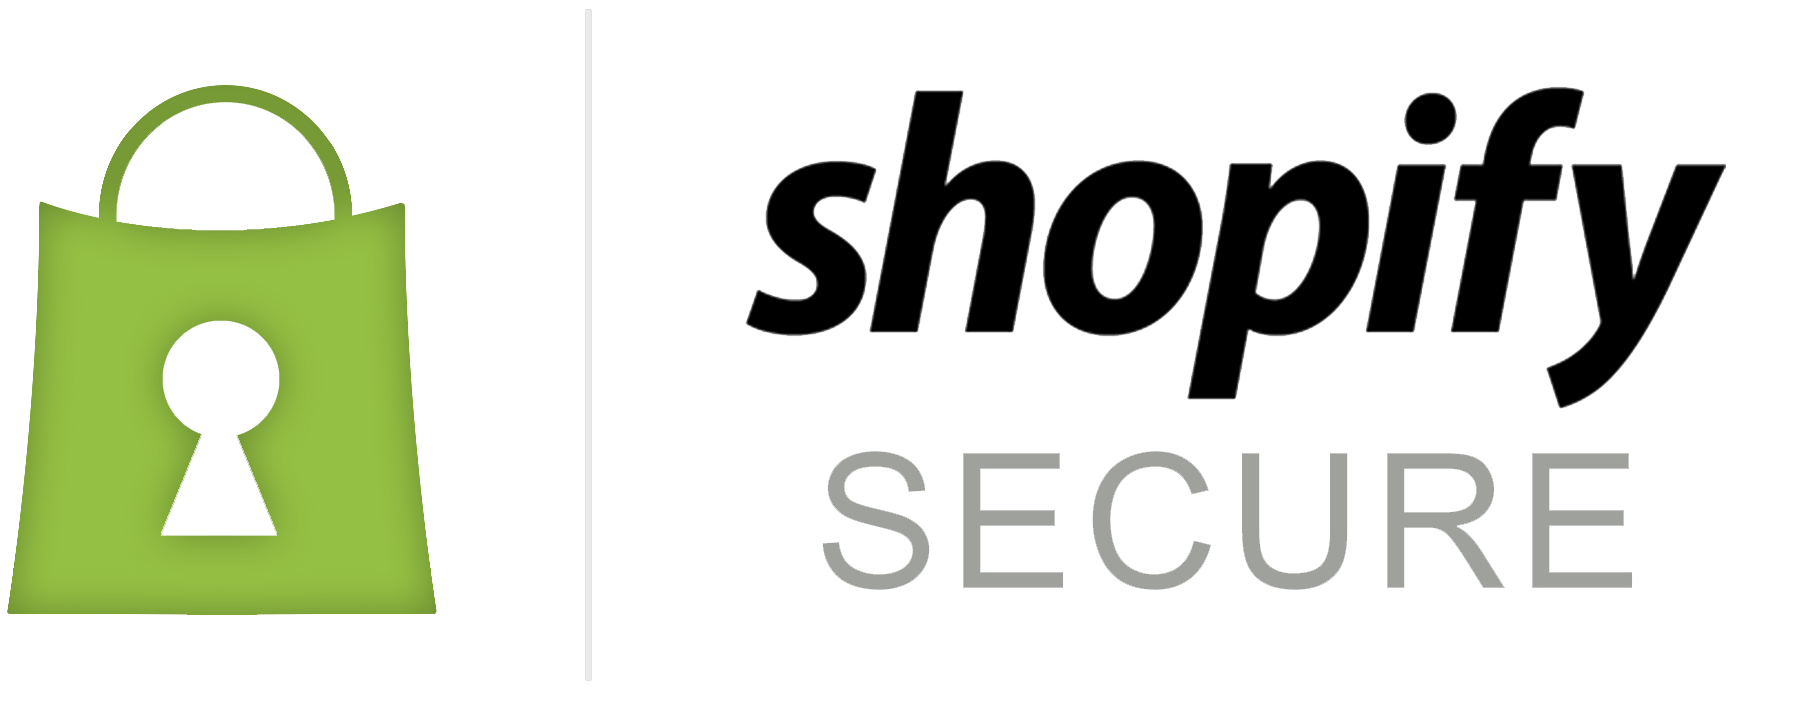 Shopify Secure